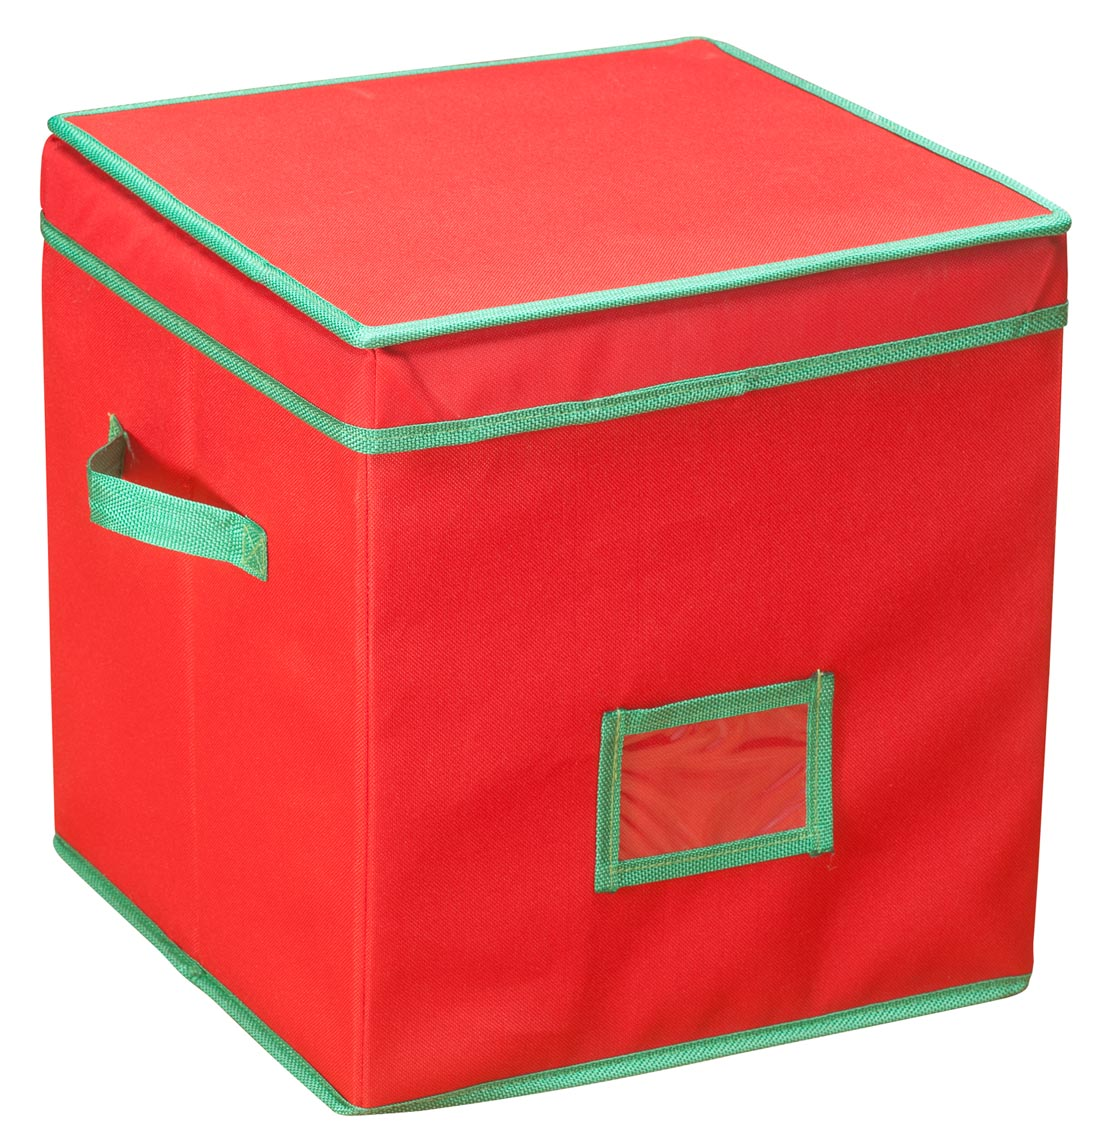 Miles Kimball   64-Cell Ornament Storage Box